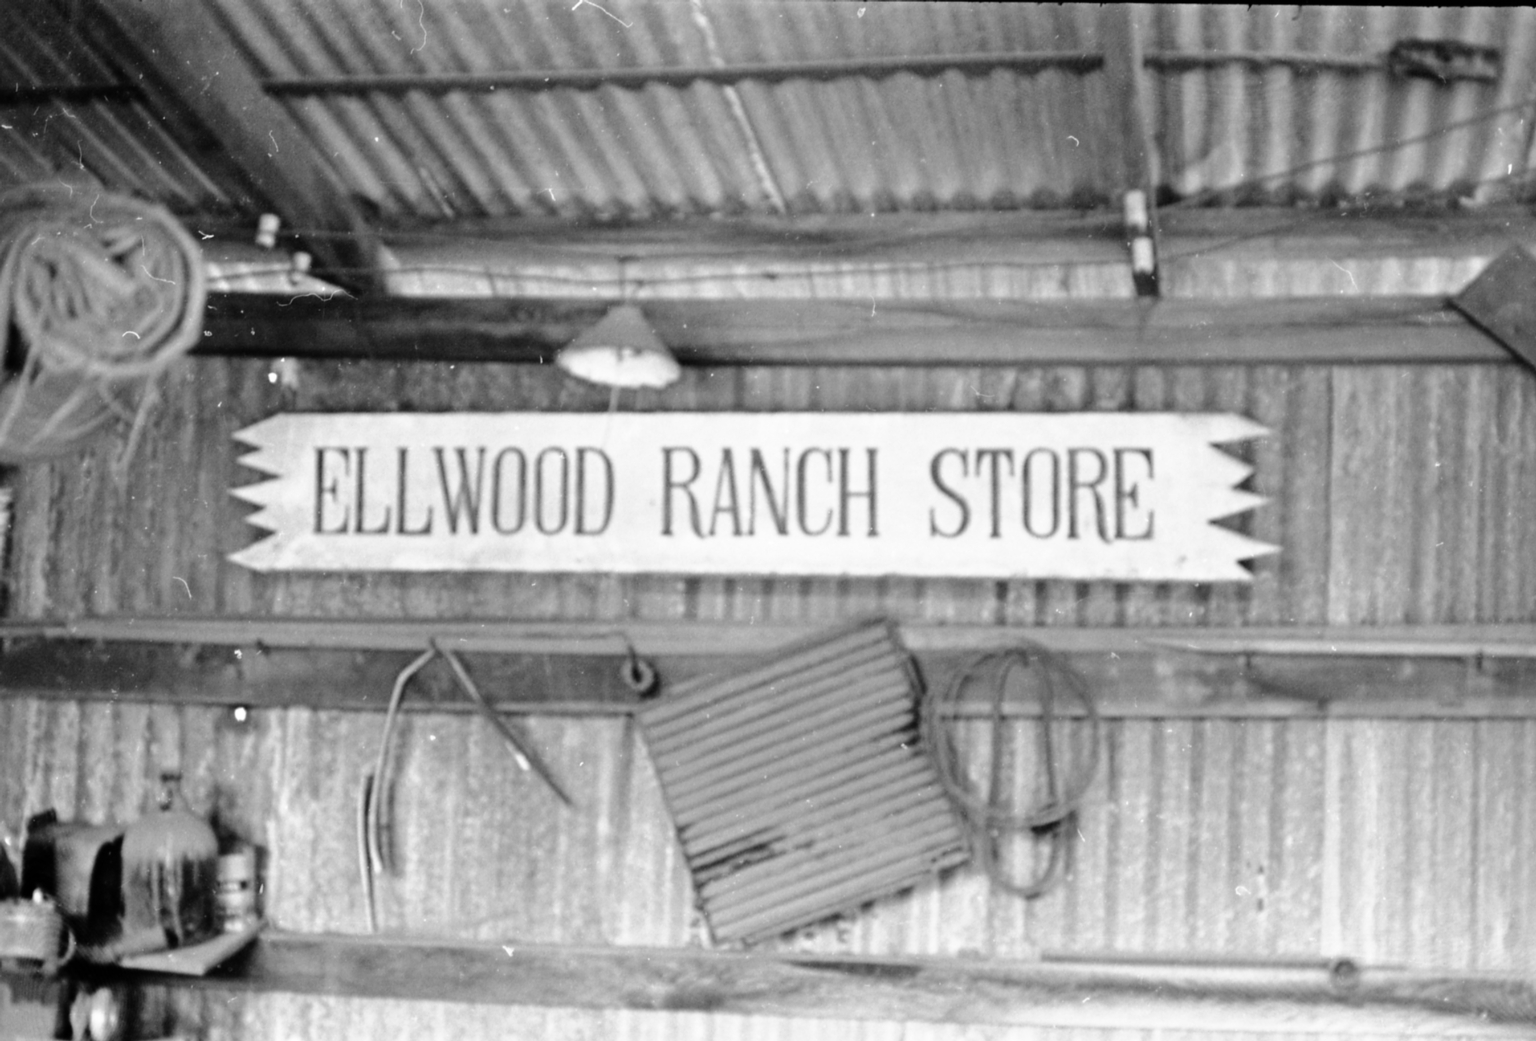 Ellwood Ranch